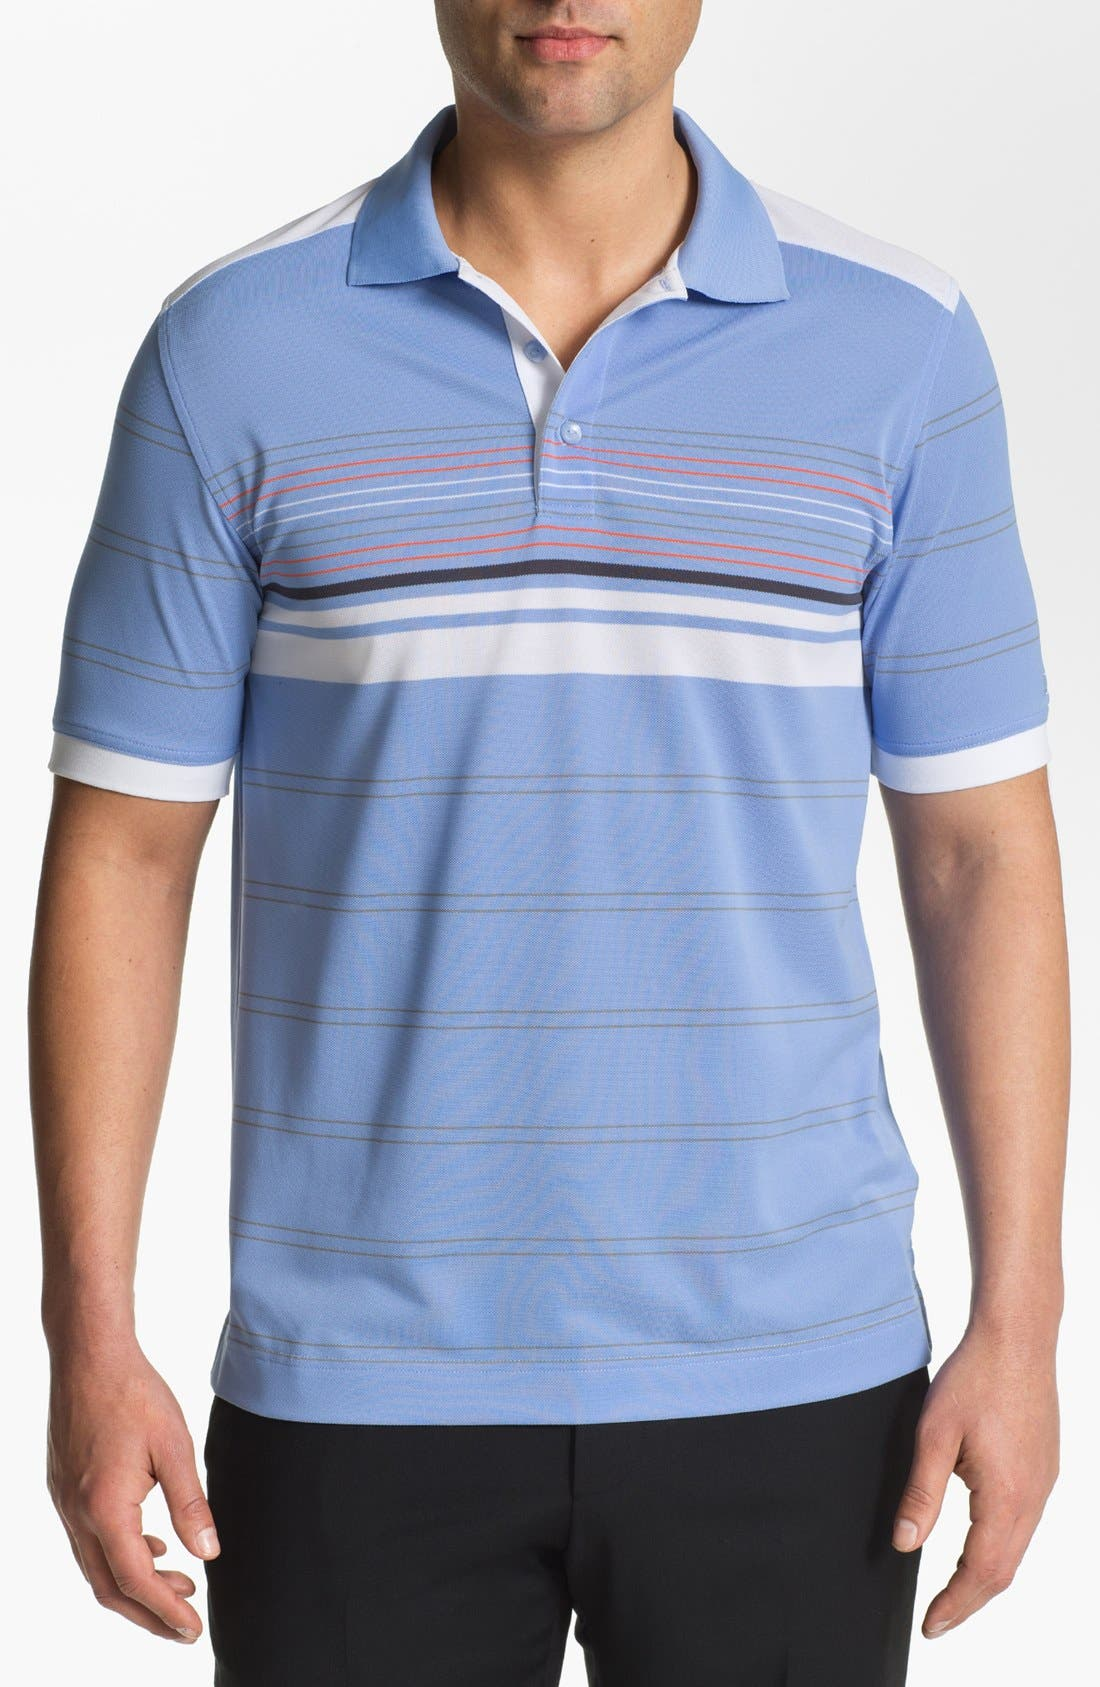 Alternate Image 1 Selected - Cutter & Buck 'Olympic Stripe' DryTec Polo